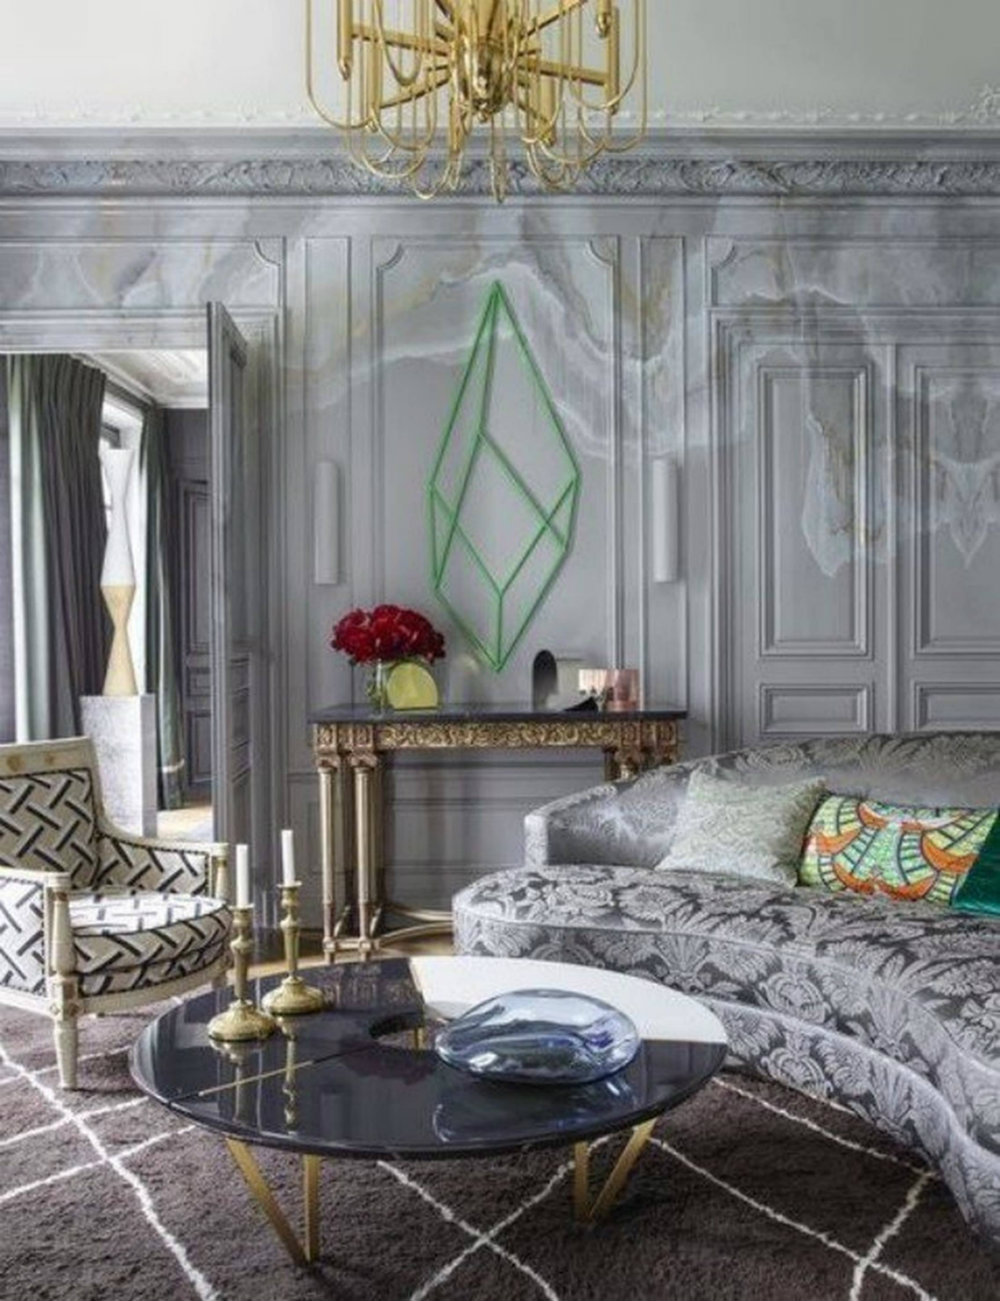 7 of the Most Chic Interiors in Paris 04 chic interiors in paris 7 of the Most Chic Interiors in Paris 7 of the Most Chic Interiors in Paris 04